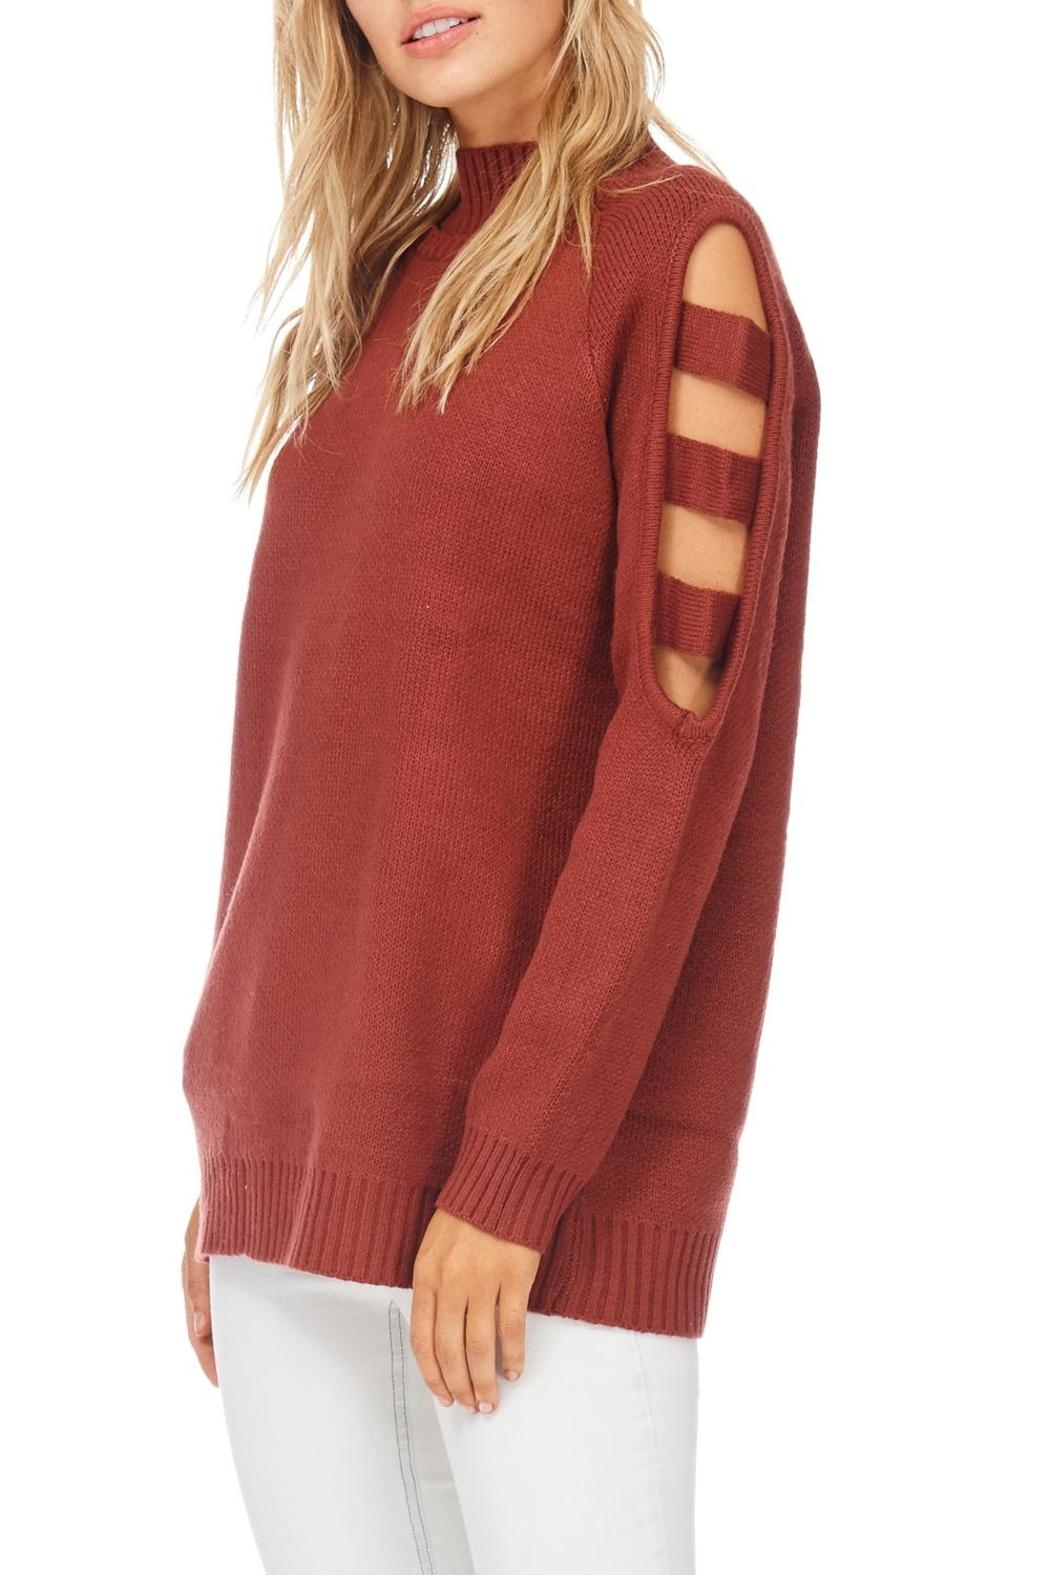 LoveRiche Brick Ladder Sleeve Sweater - Main Image